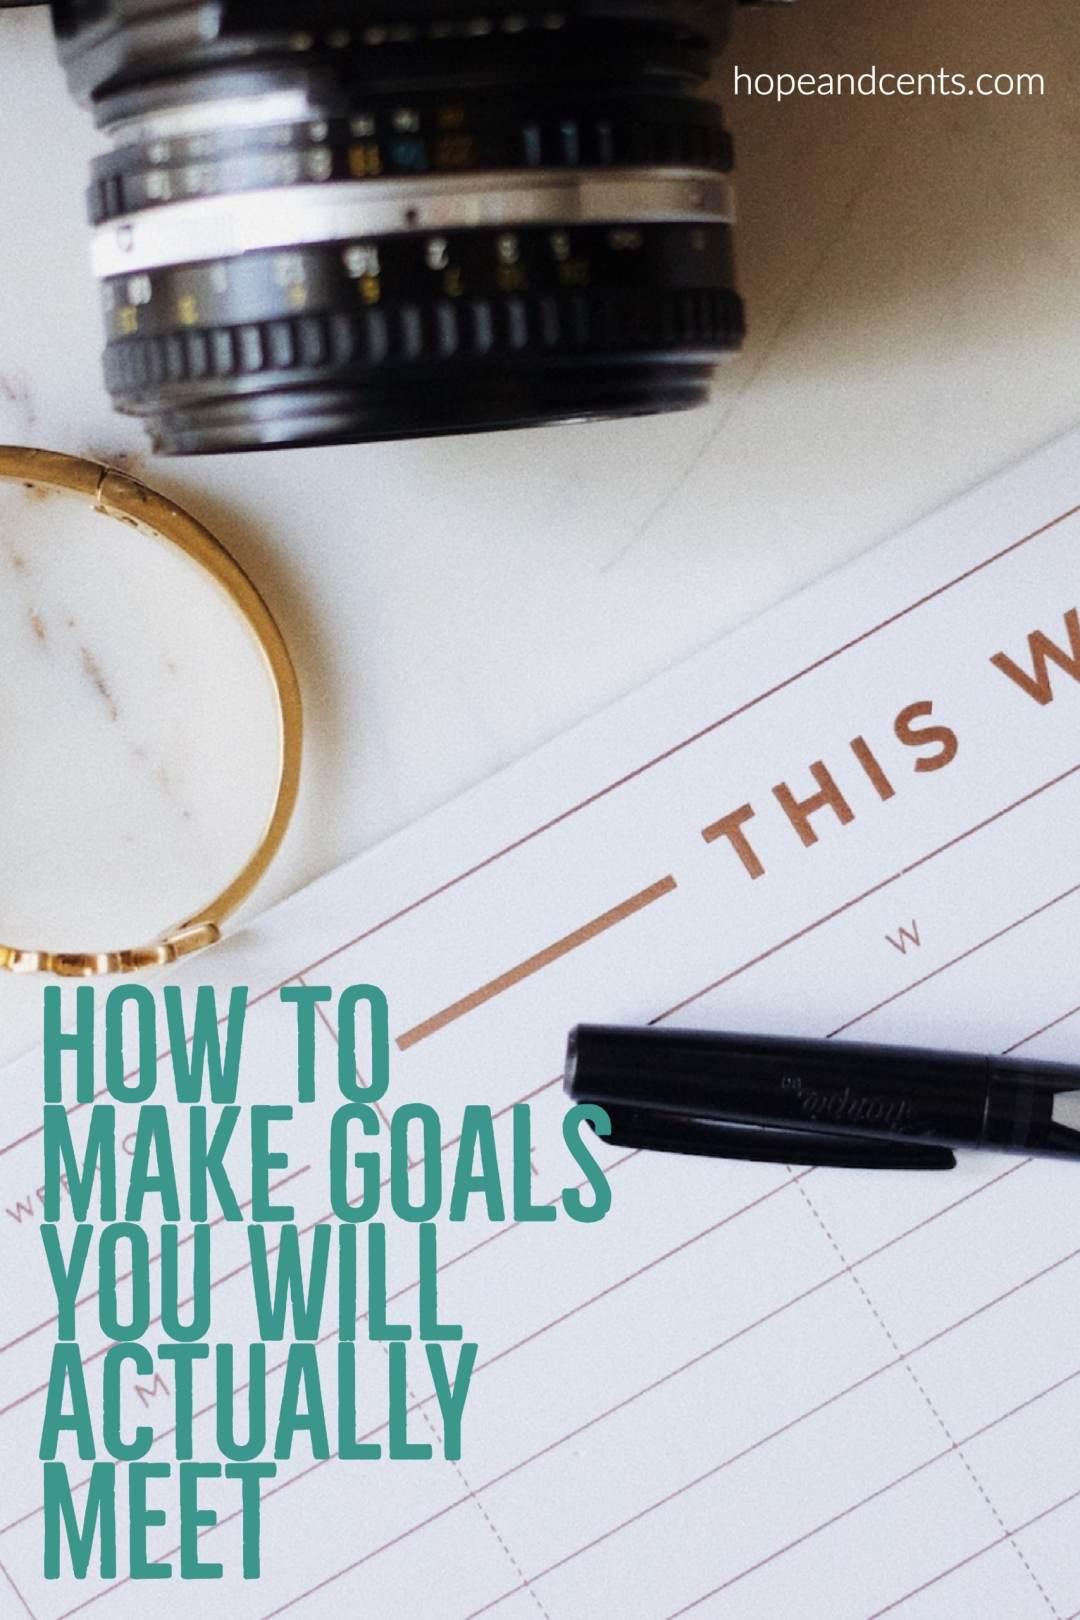 Approximately 45% of Americans make New Year's Resolutions, but only 8% keep them. The solution? Make goals - goals you will actually meet. These tips will help you do just that! #goals #personaldevelopment  #newyear #goalsetting